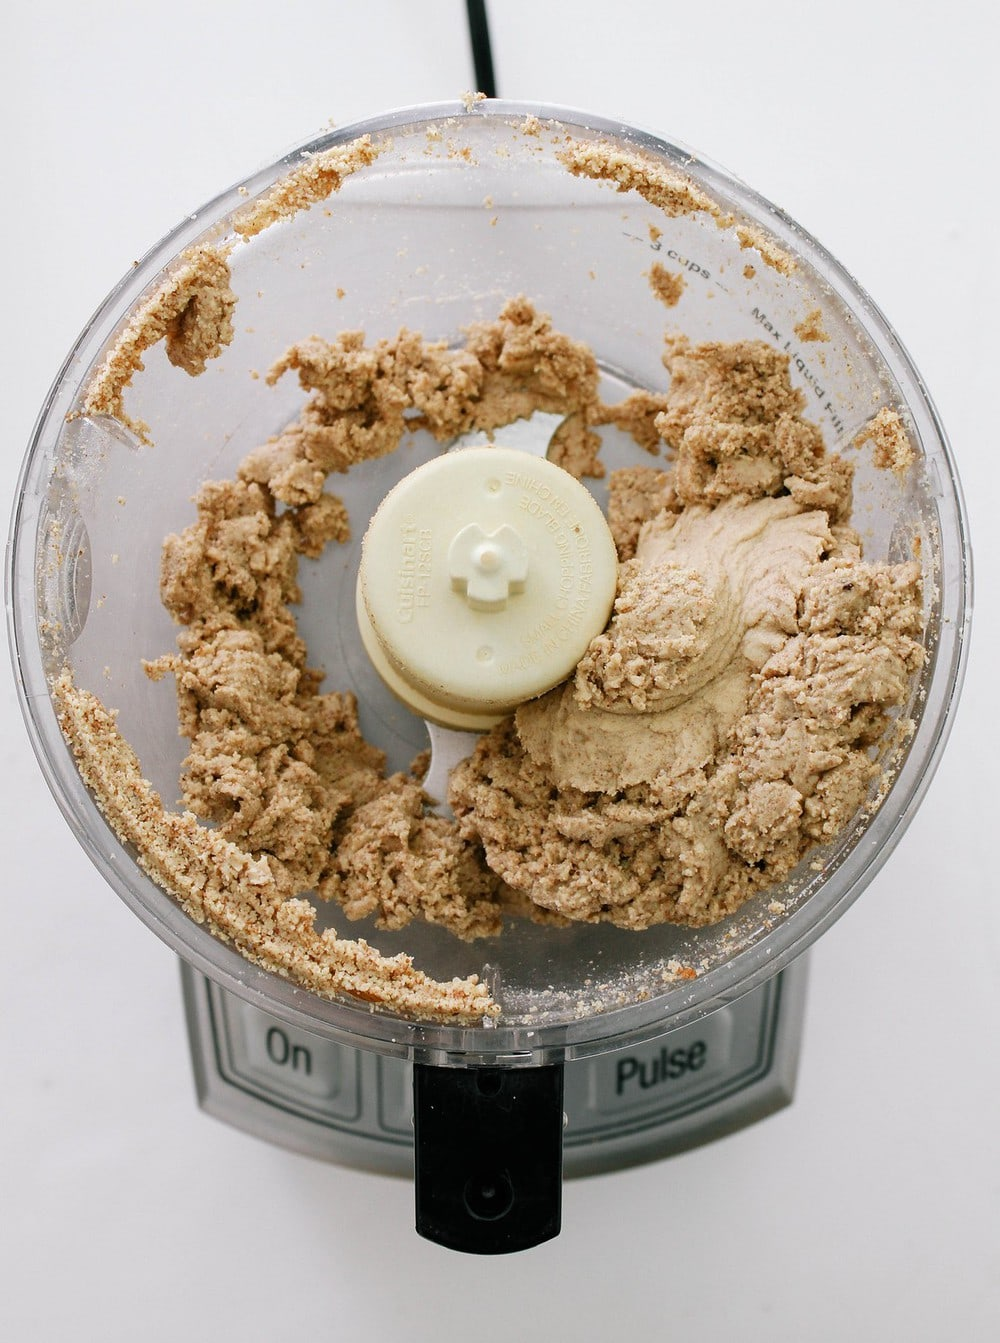 top down view of homemade almond butter in a food processor after being processed for about 10 minutes, clumpy in formation